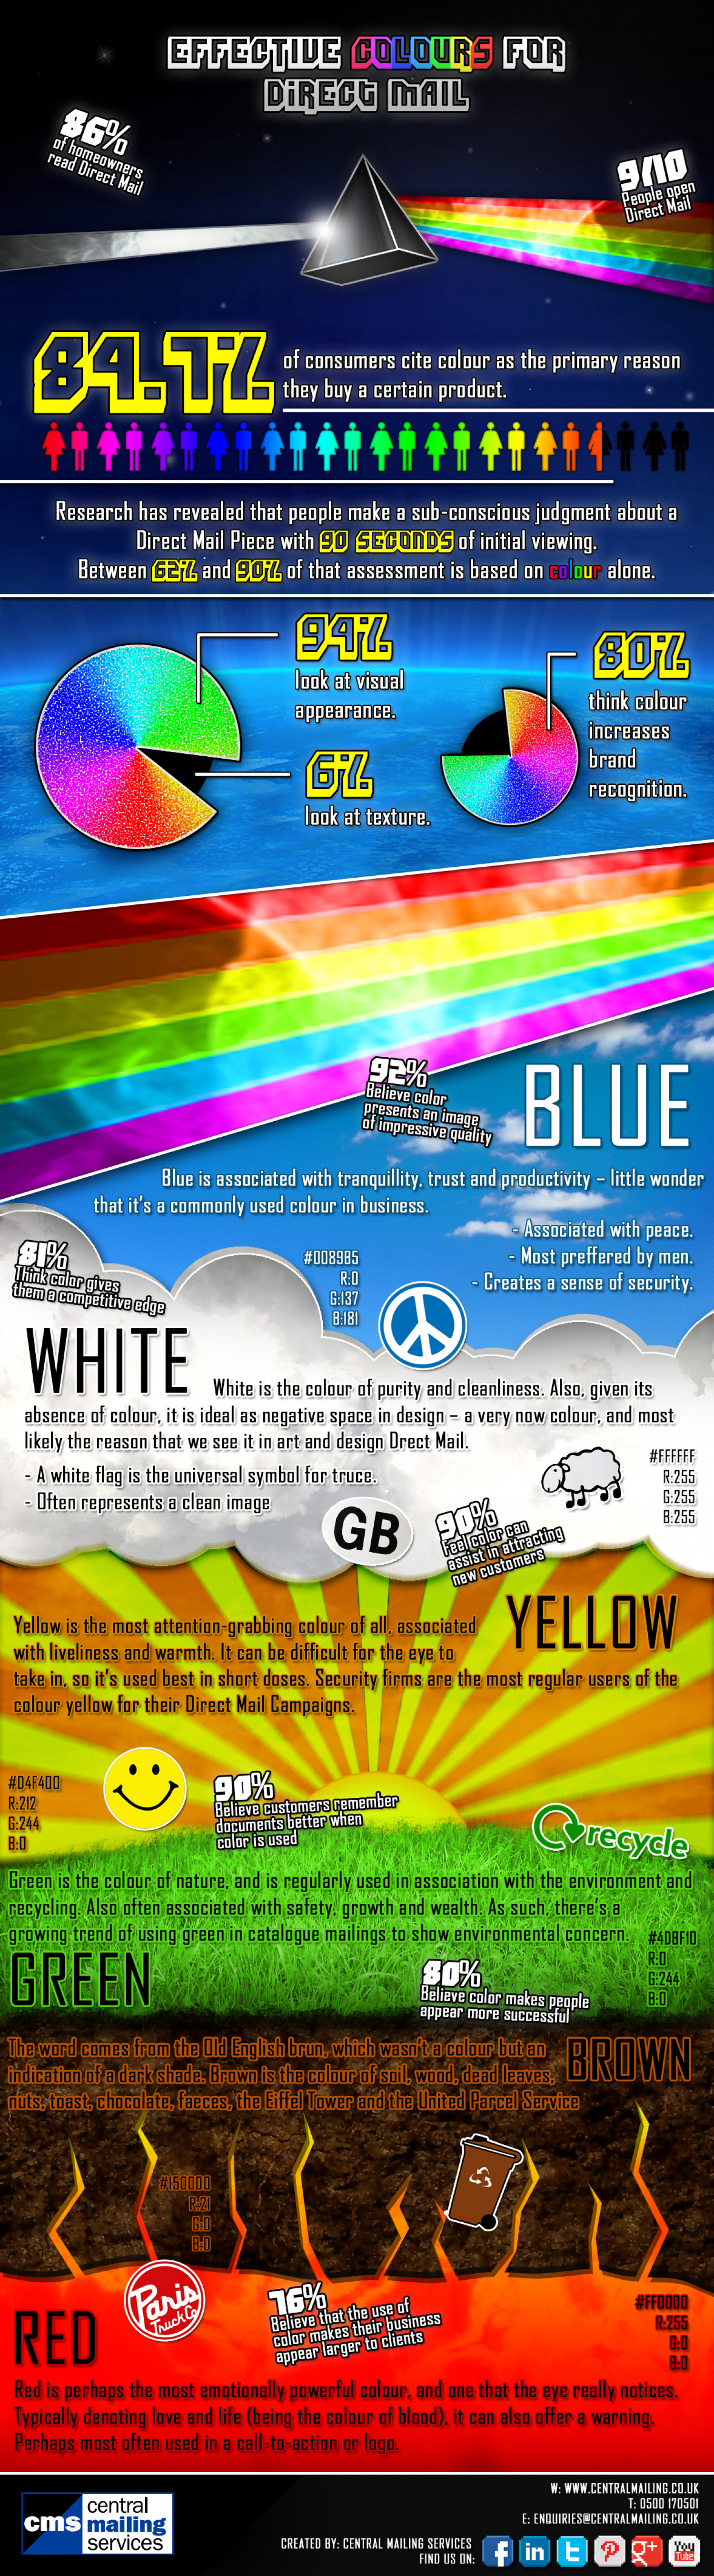 Effective Colours For Direct Mail Infographic